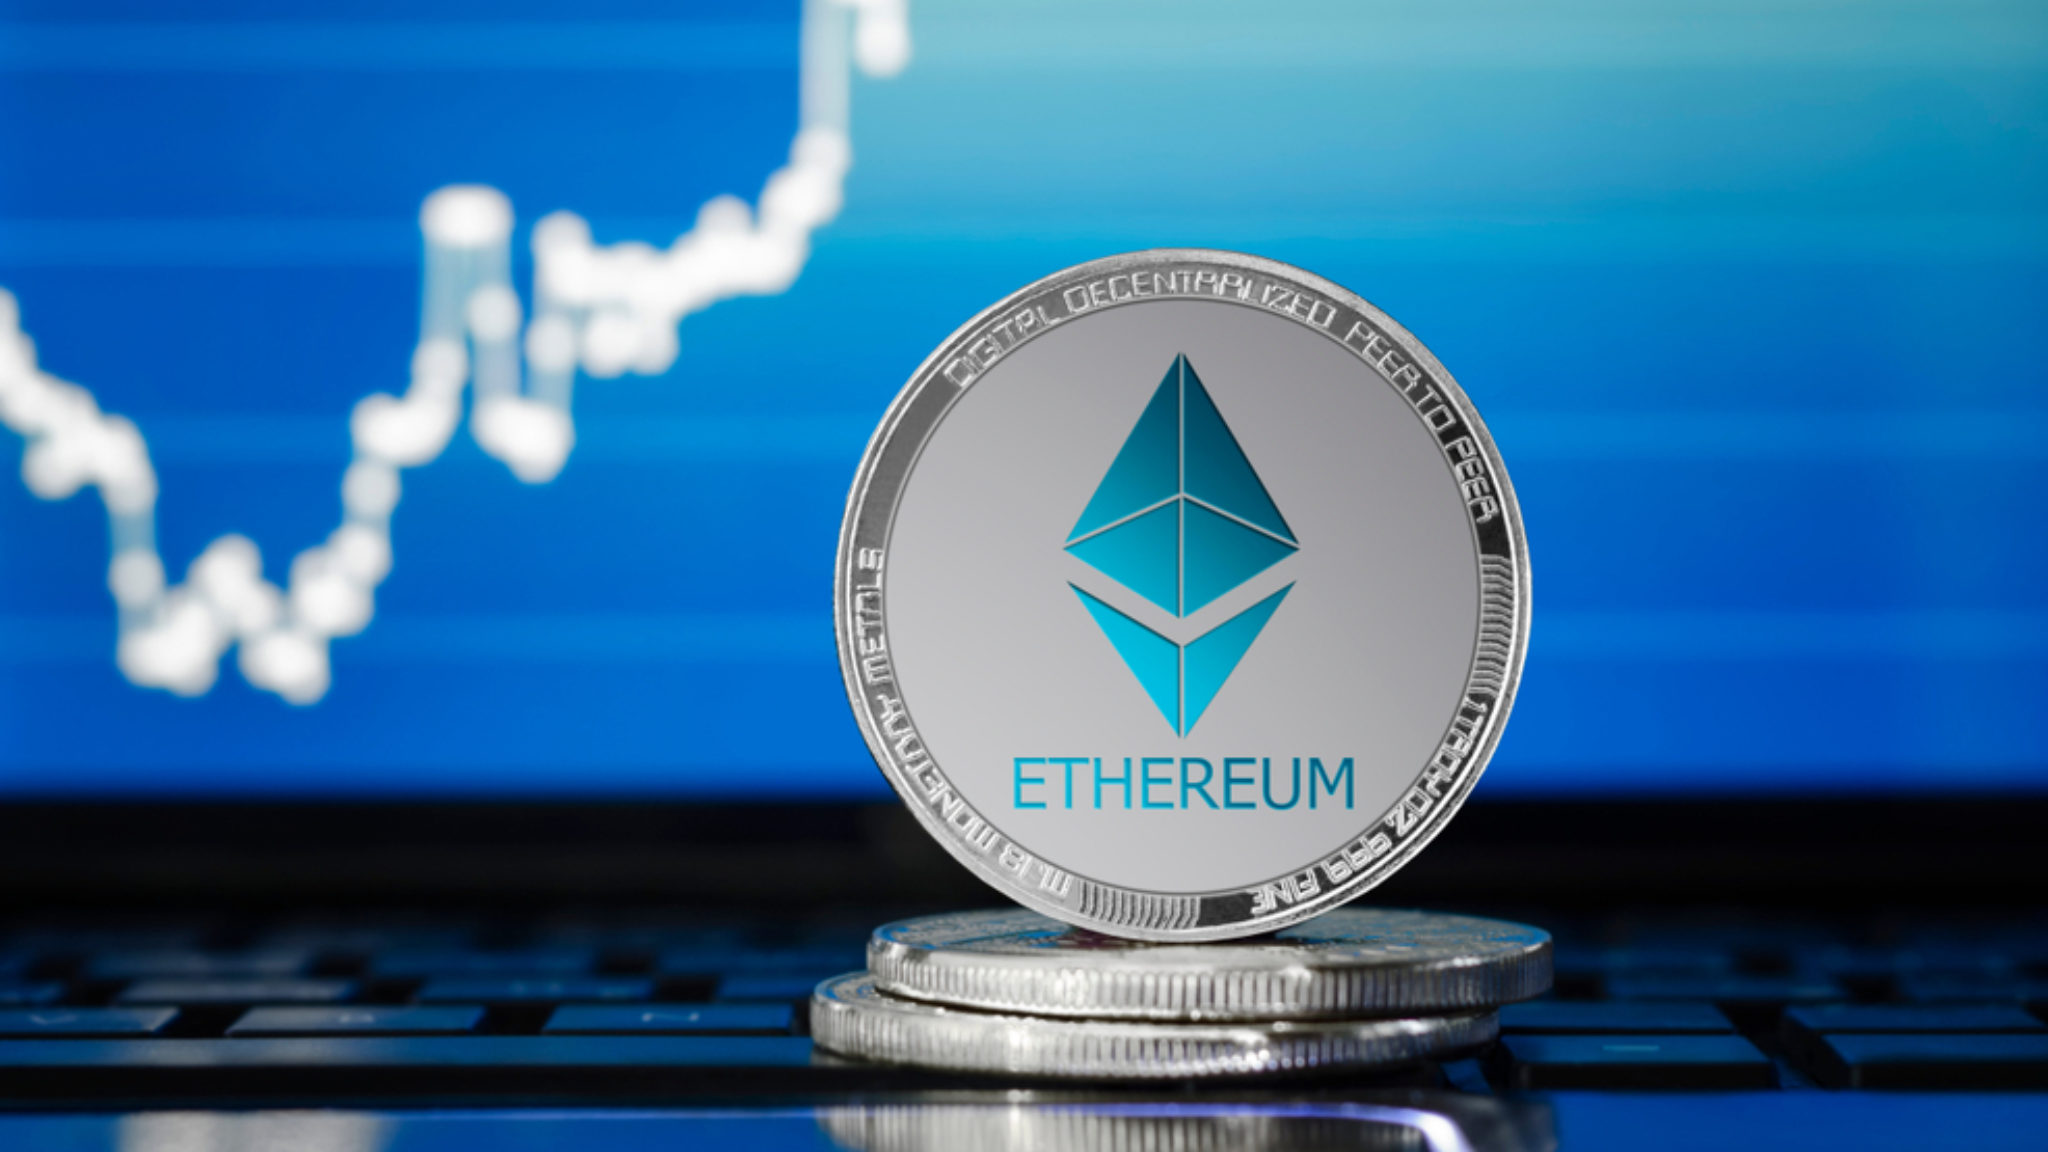 Ethereum [ETH] In Trouble? Analyst Warns Altcoins Could Plunge Further